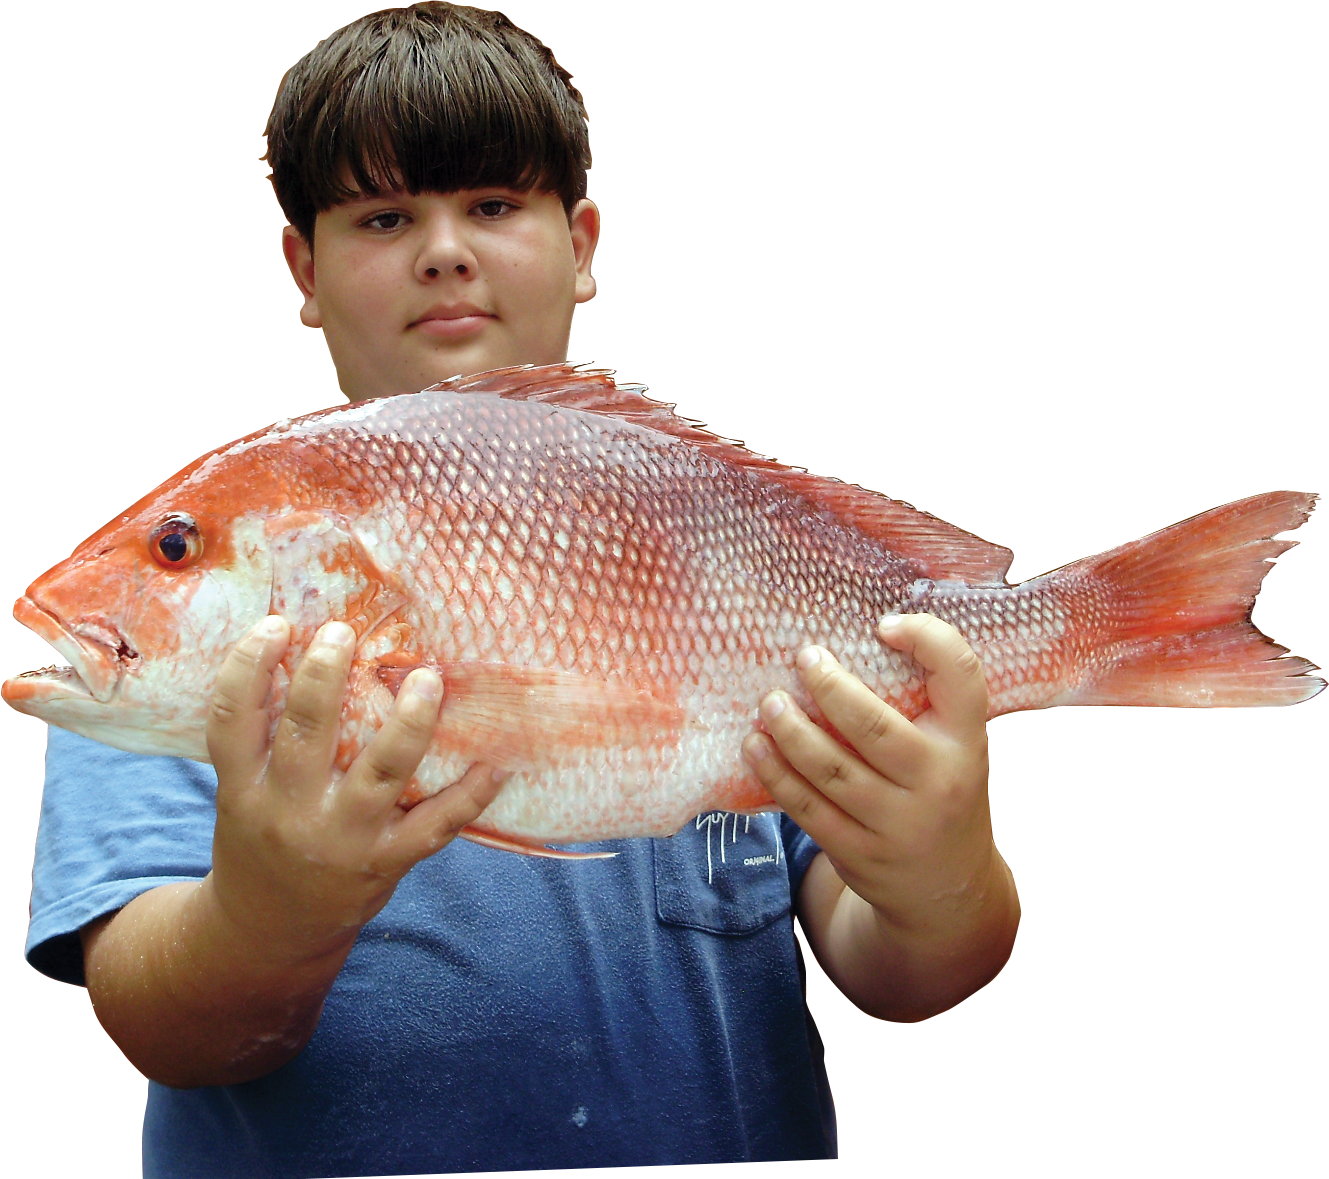 Red snapper is an important species in the Gulf for recreational and commercial fishers.